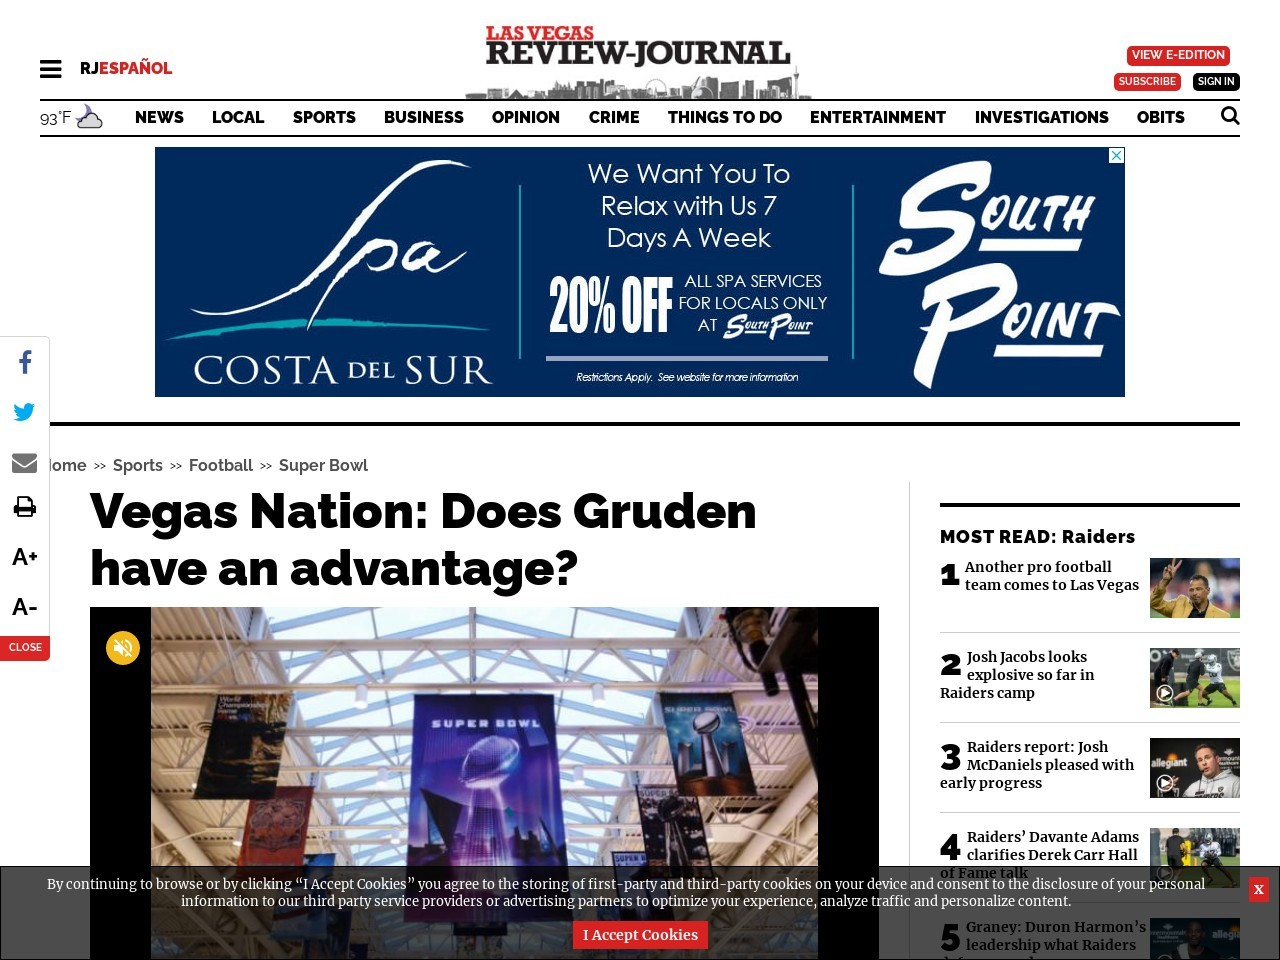 Vegas Nation: Does Gruden have an advantage?